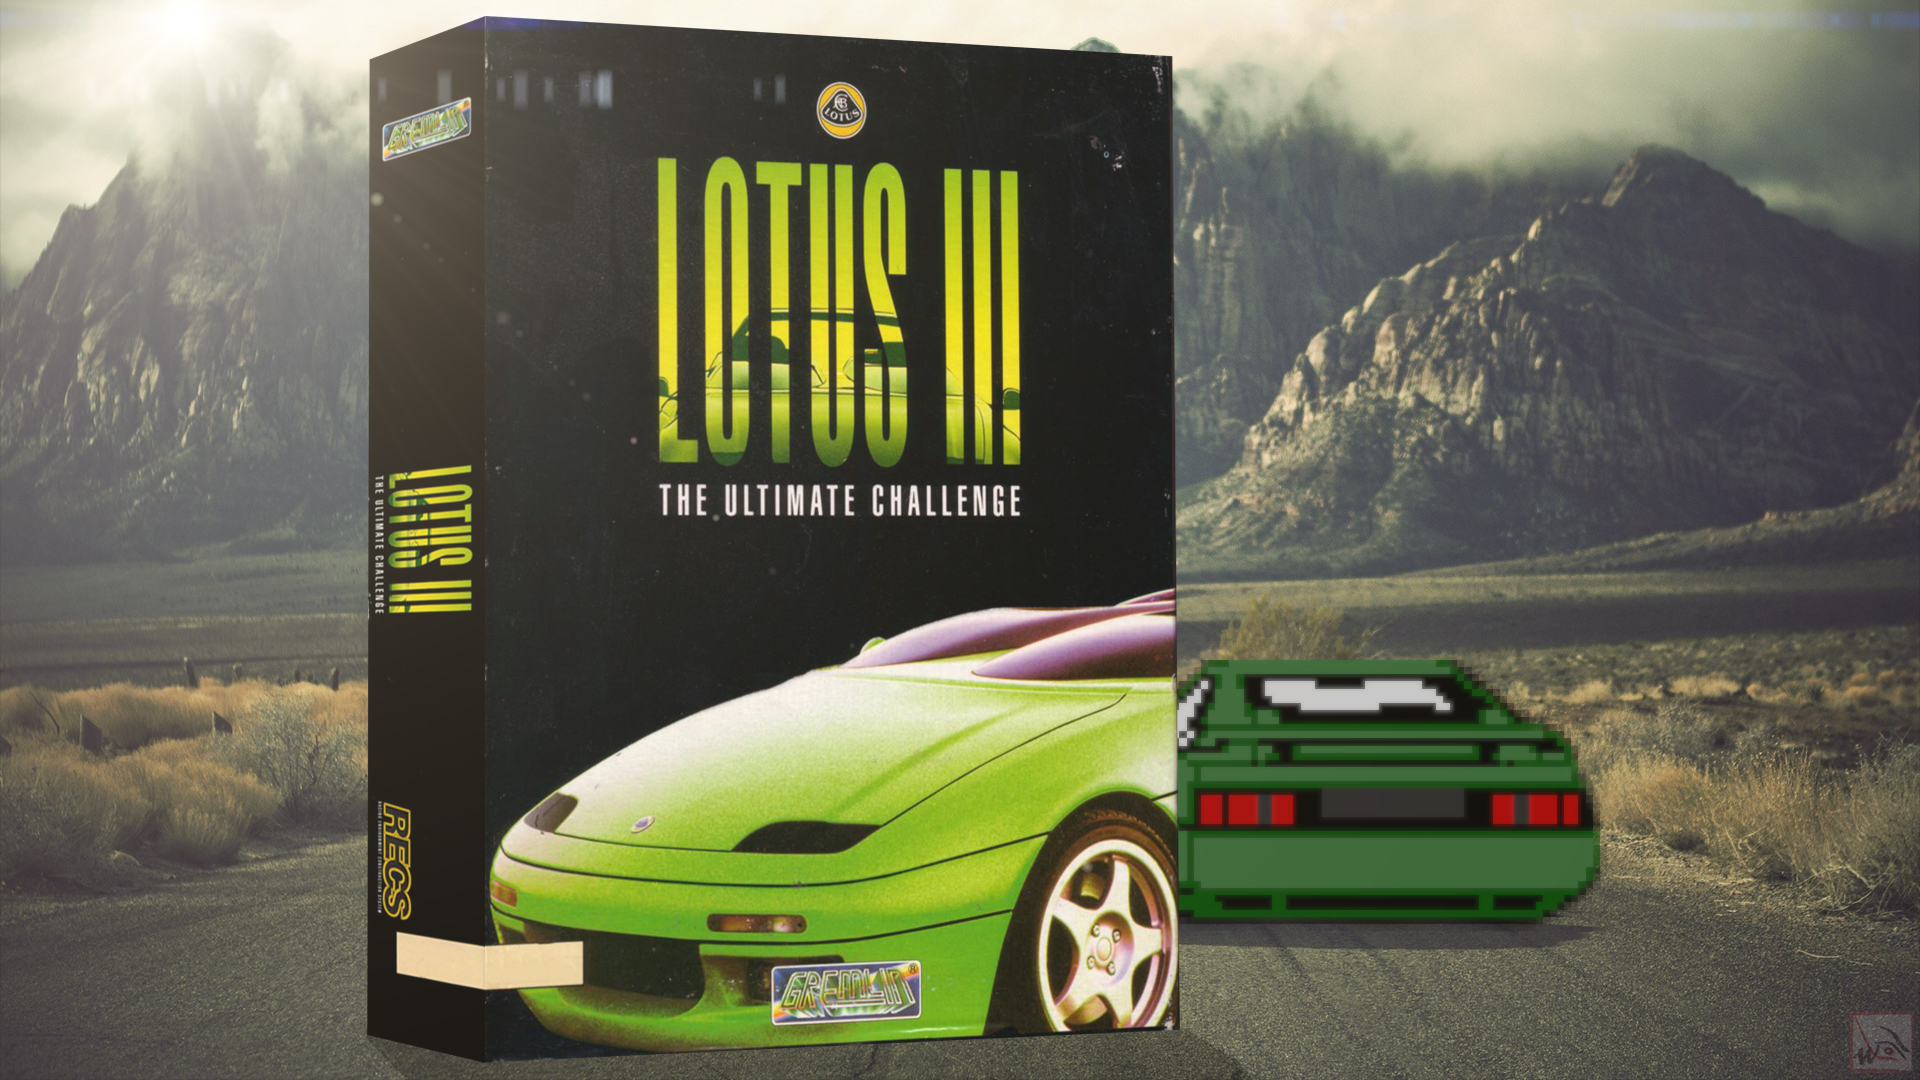 """""""Lotus III - The Ultimate Challenge"""" from Gremlin"""